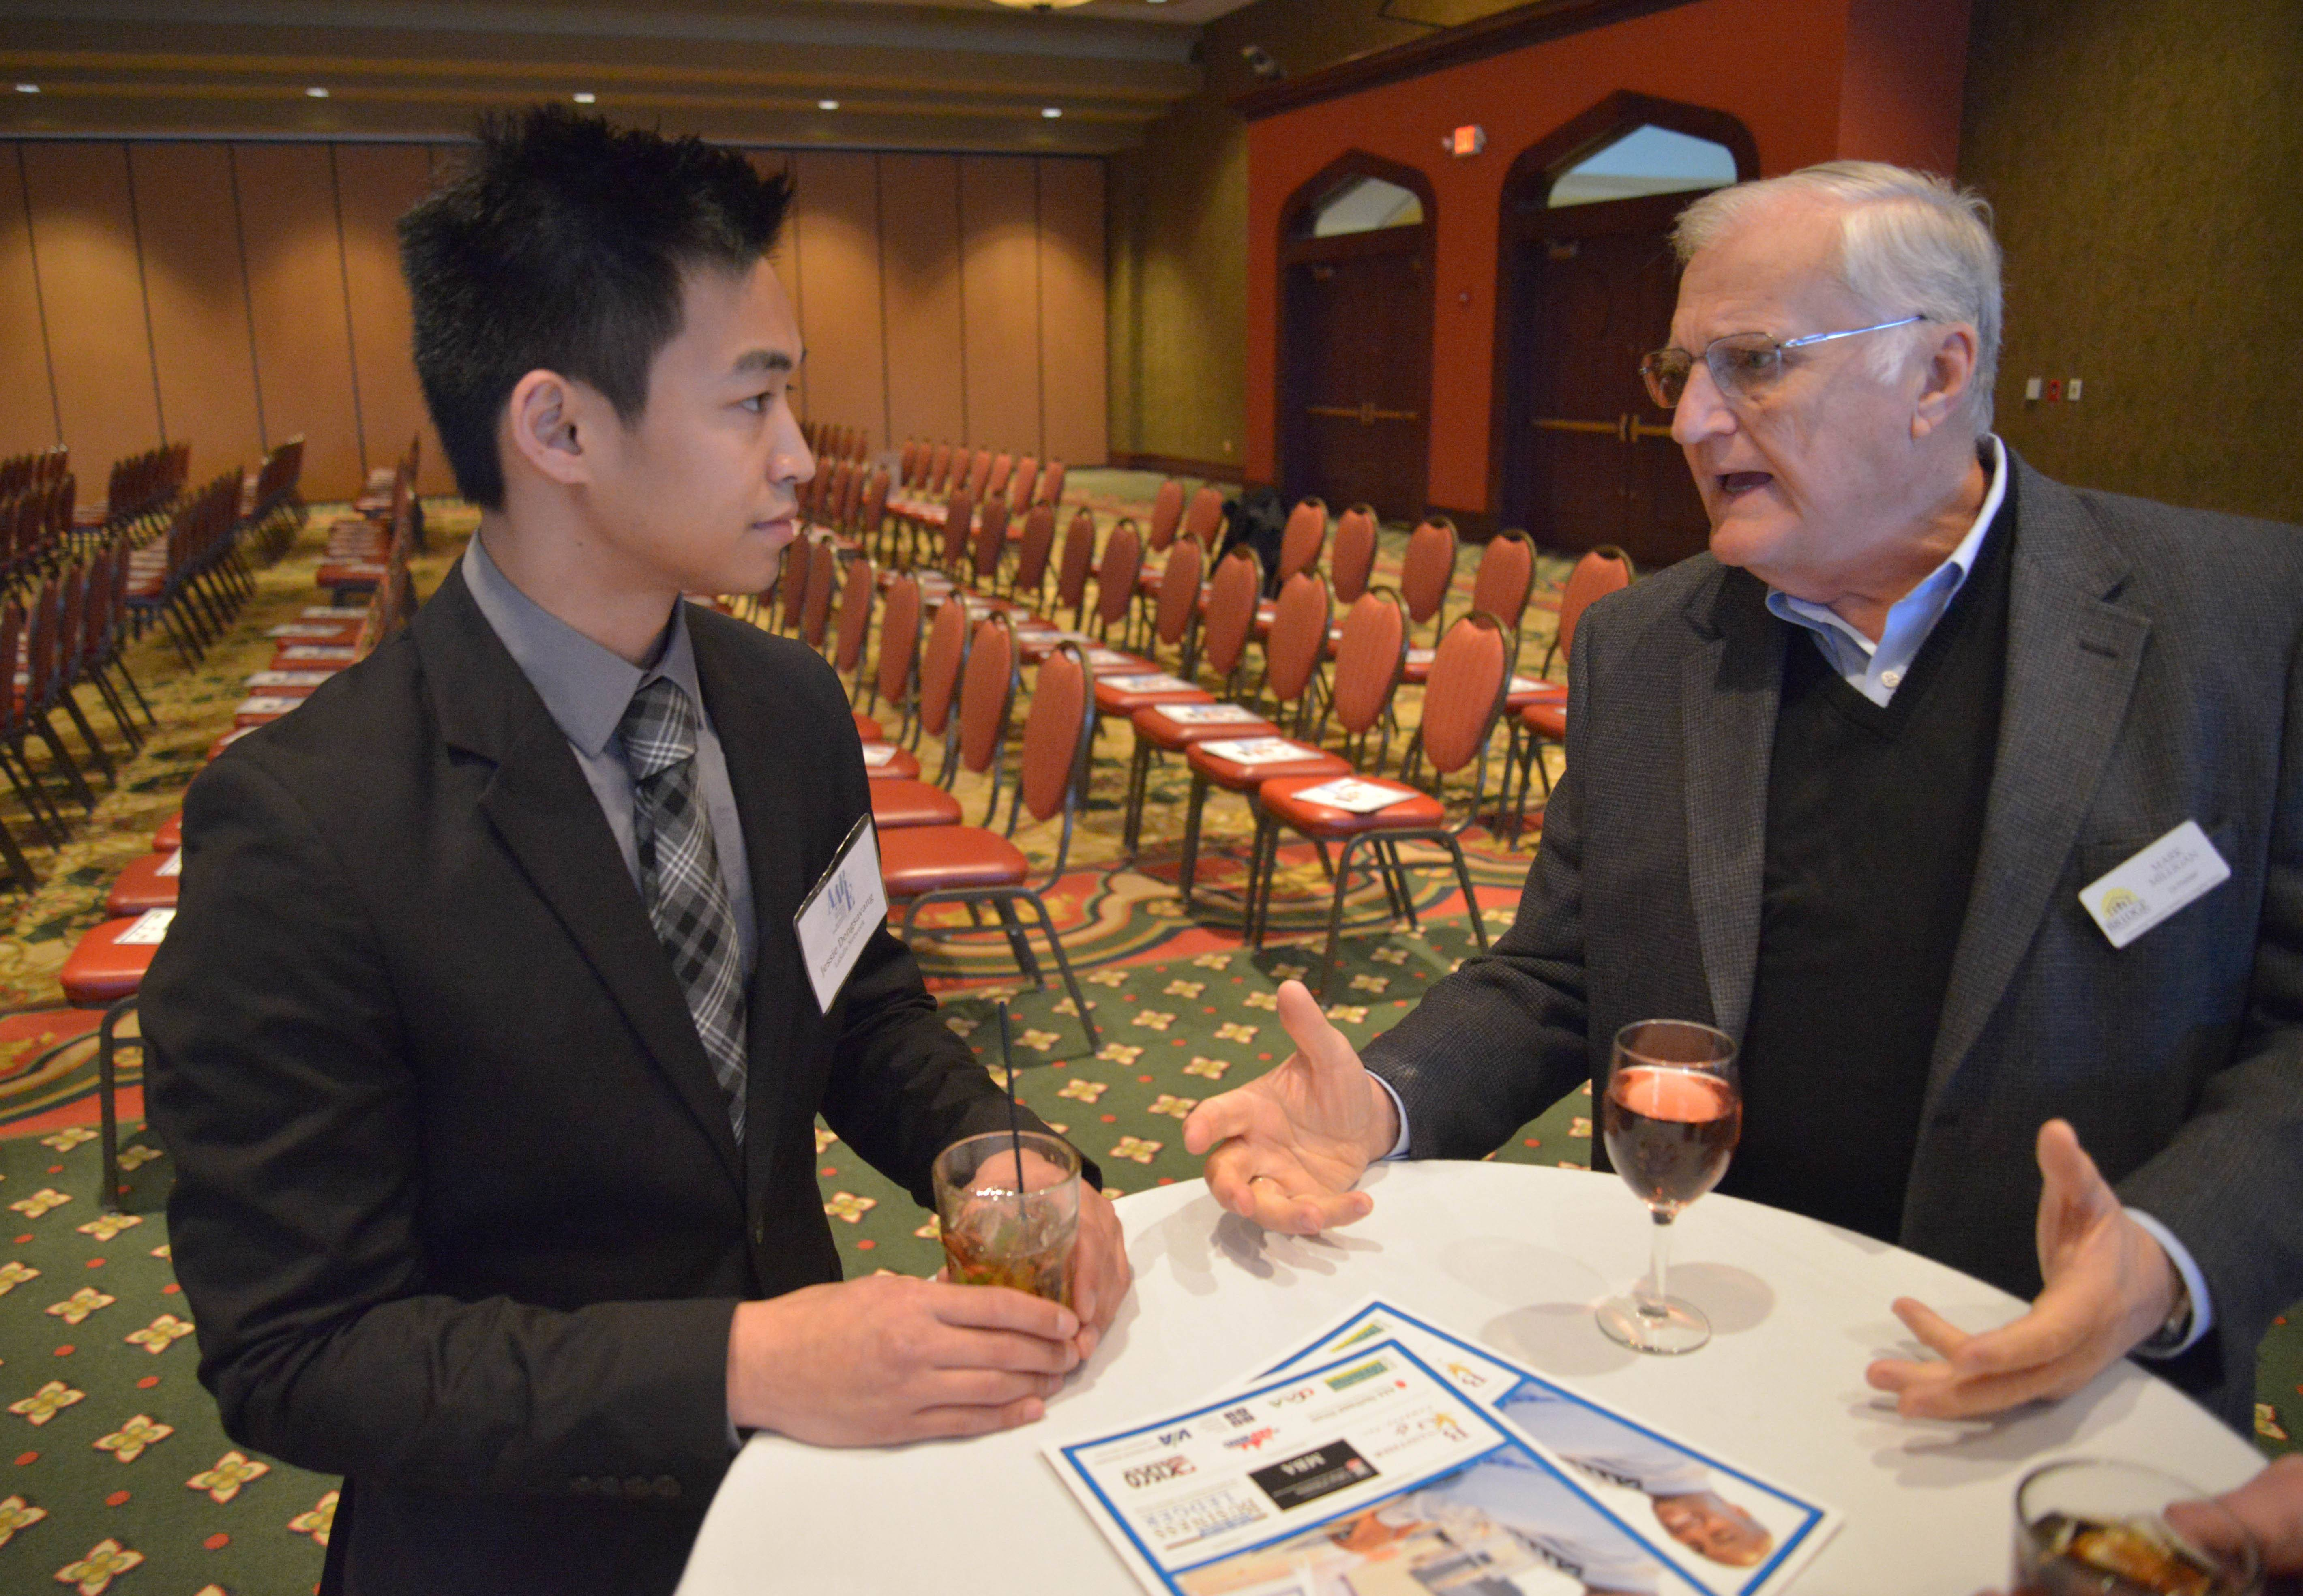 Paul Michna/pmichna@dailyherald.com Jessie Dengsavang of LaSalle Network talks to Mark Milligan of Bridge Communities during the  Daily Herald Business Ledger AABE awards Wednesday March 12, at Medinah Banquets in Addison.